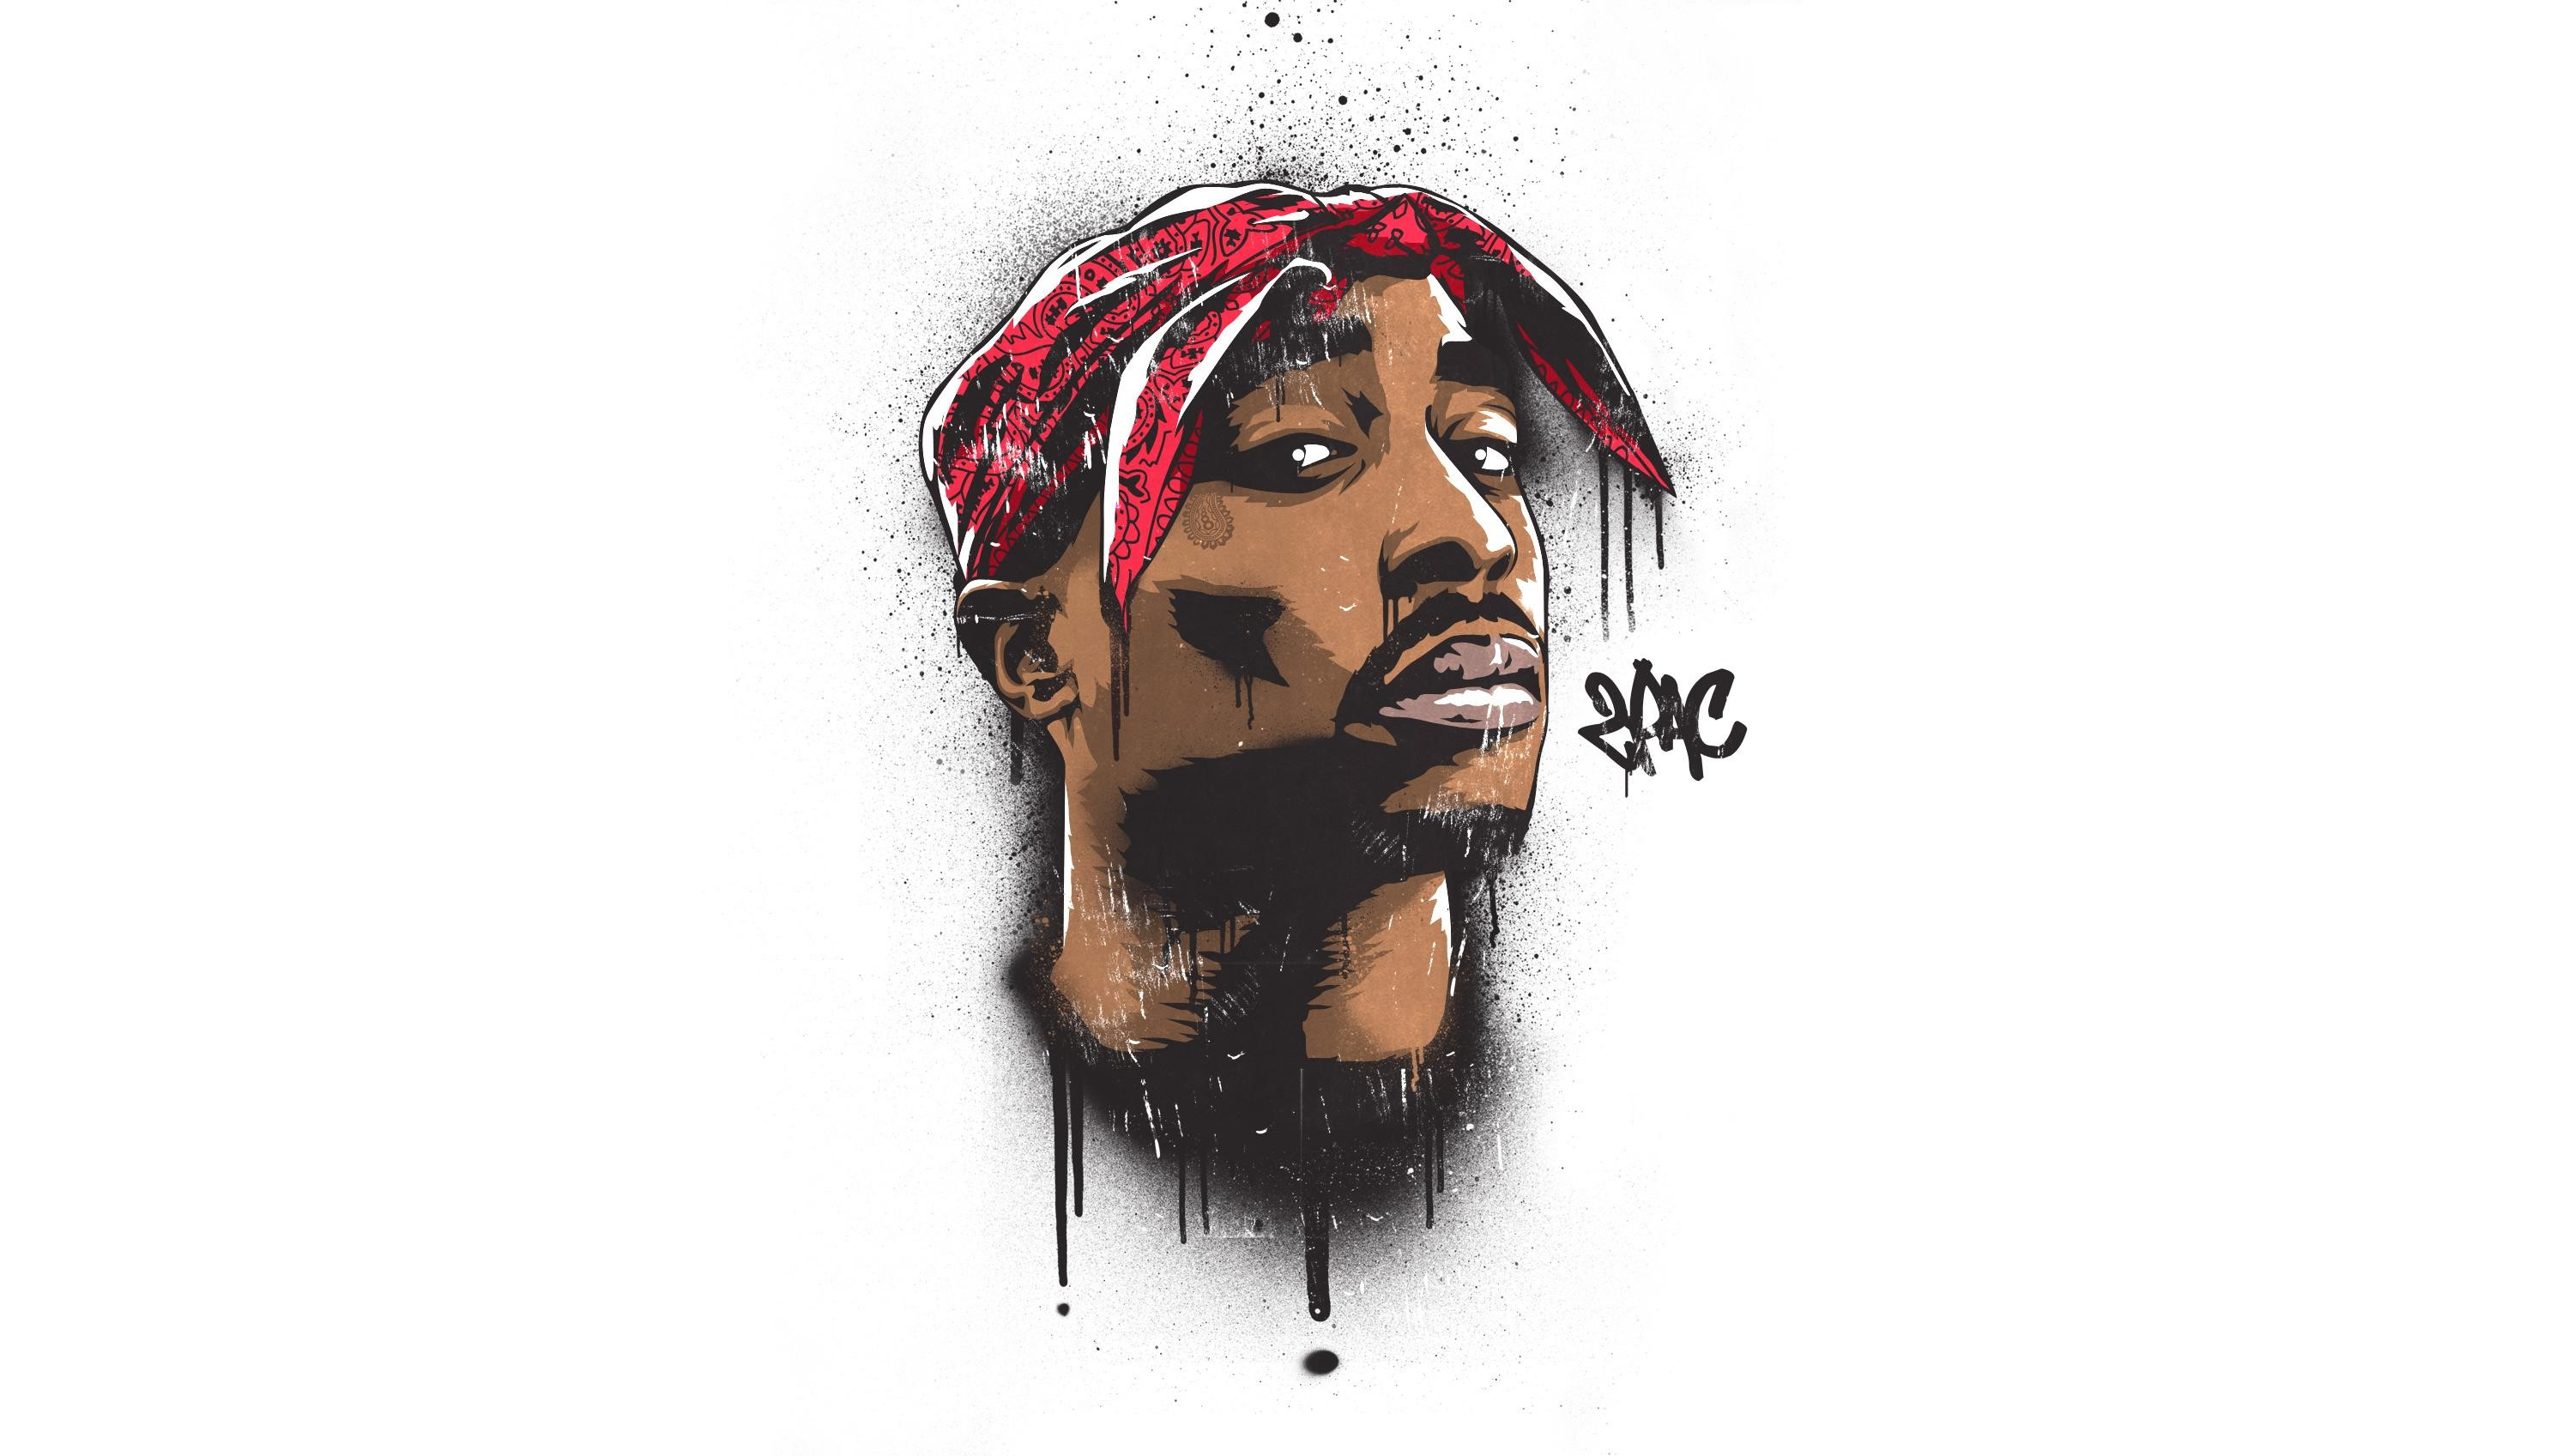 2pac-Makaveli-Hip-hop-HD-Wallpaper